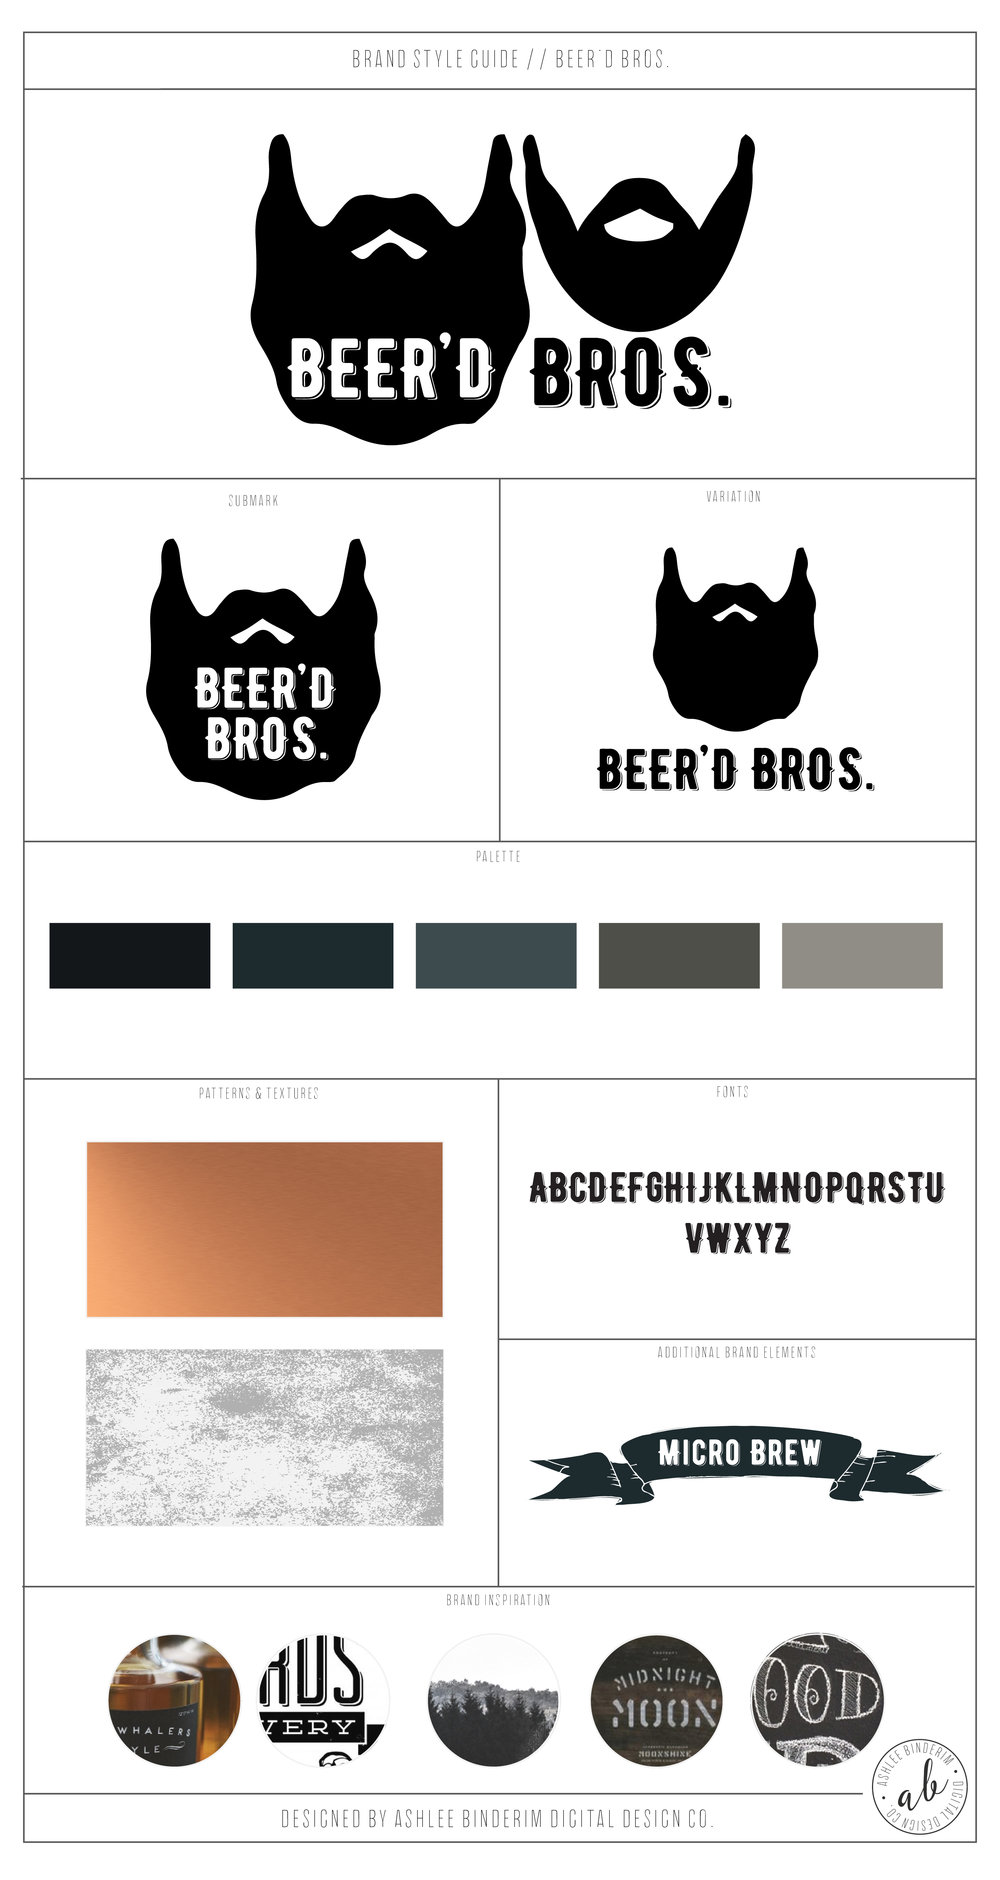 Brand Style Guide – Beer'd Bros.